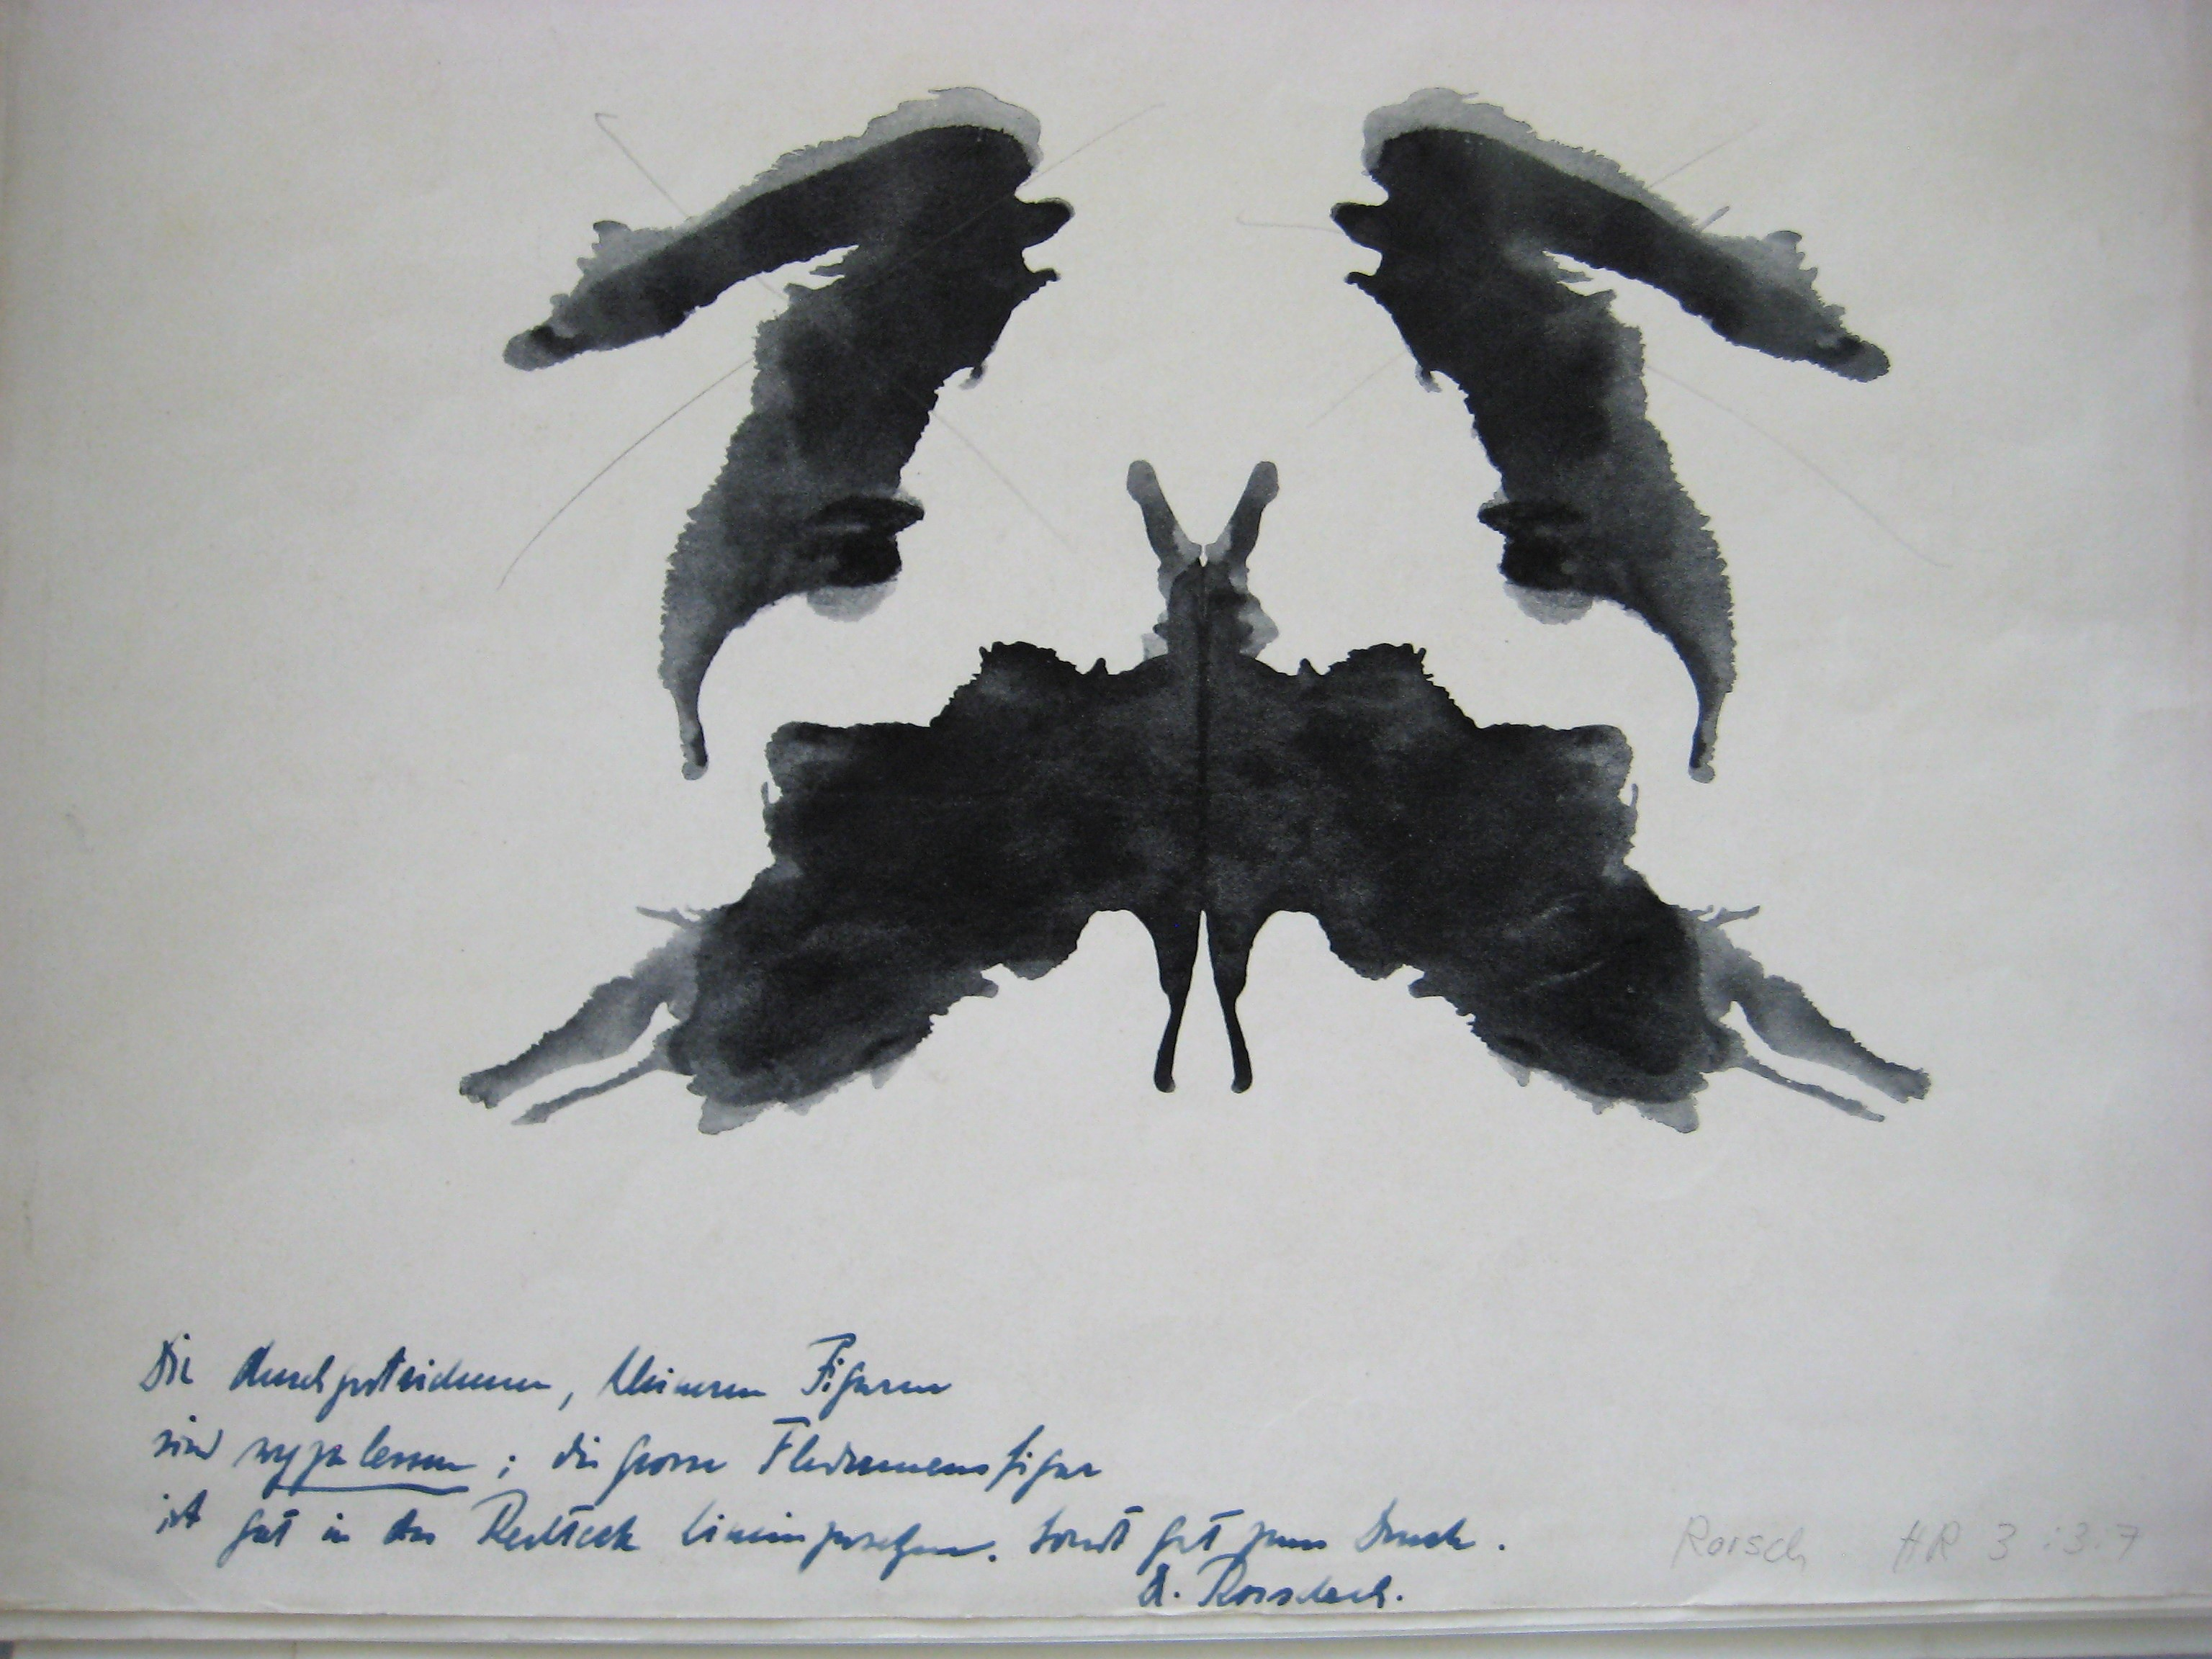 A Rorschach blot with publisher notes.